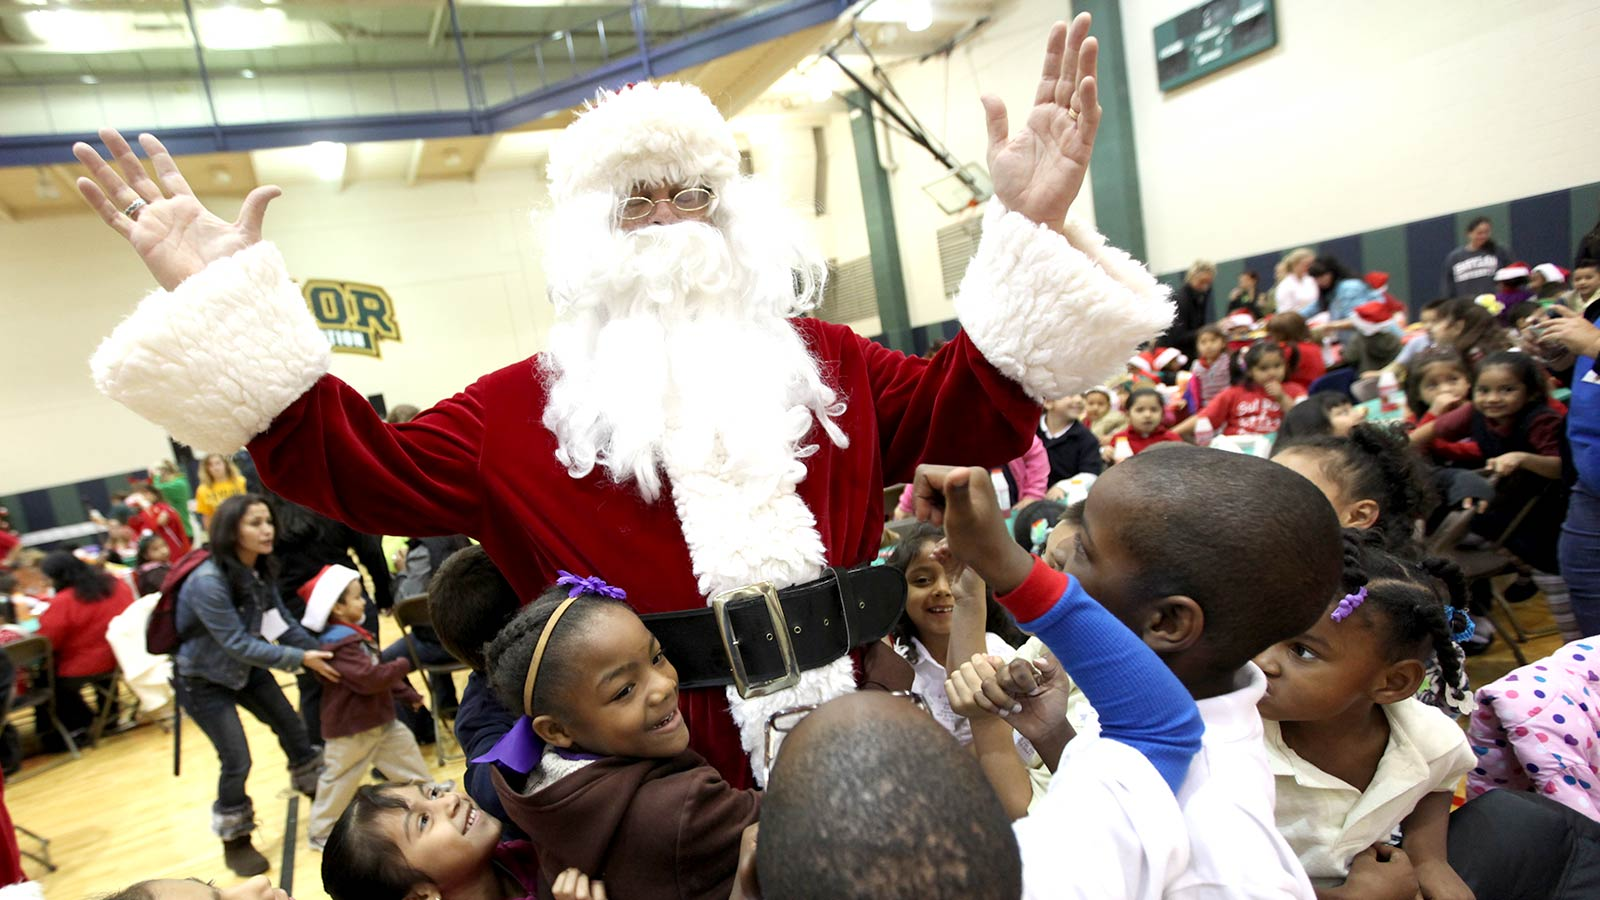 Santa's Workshop is an event to provide an uplifting Christmas experience for children from the Waco community.